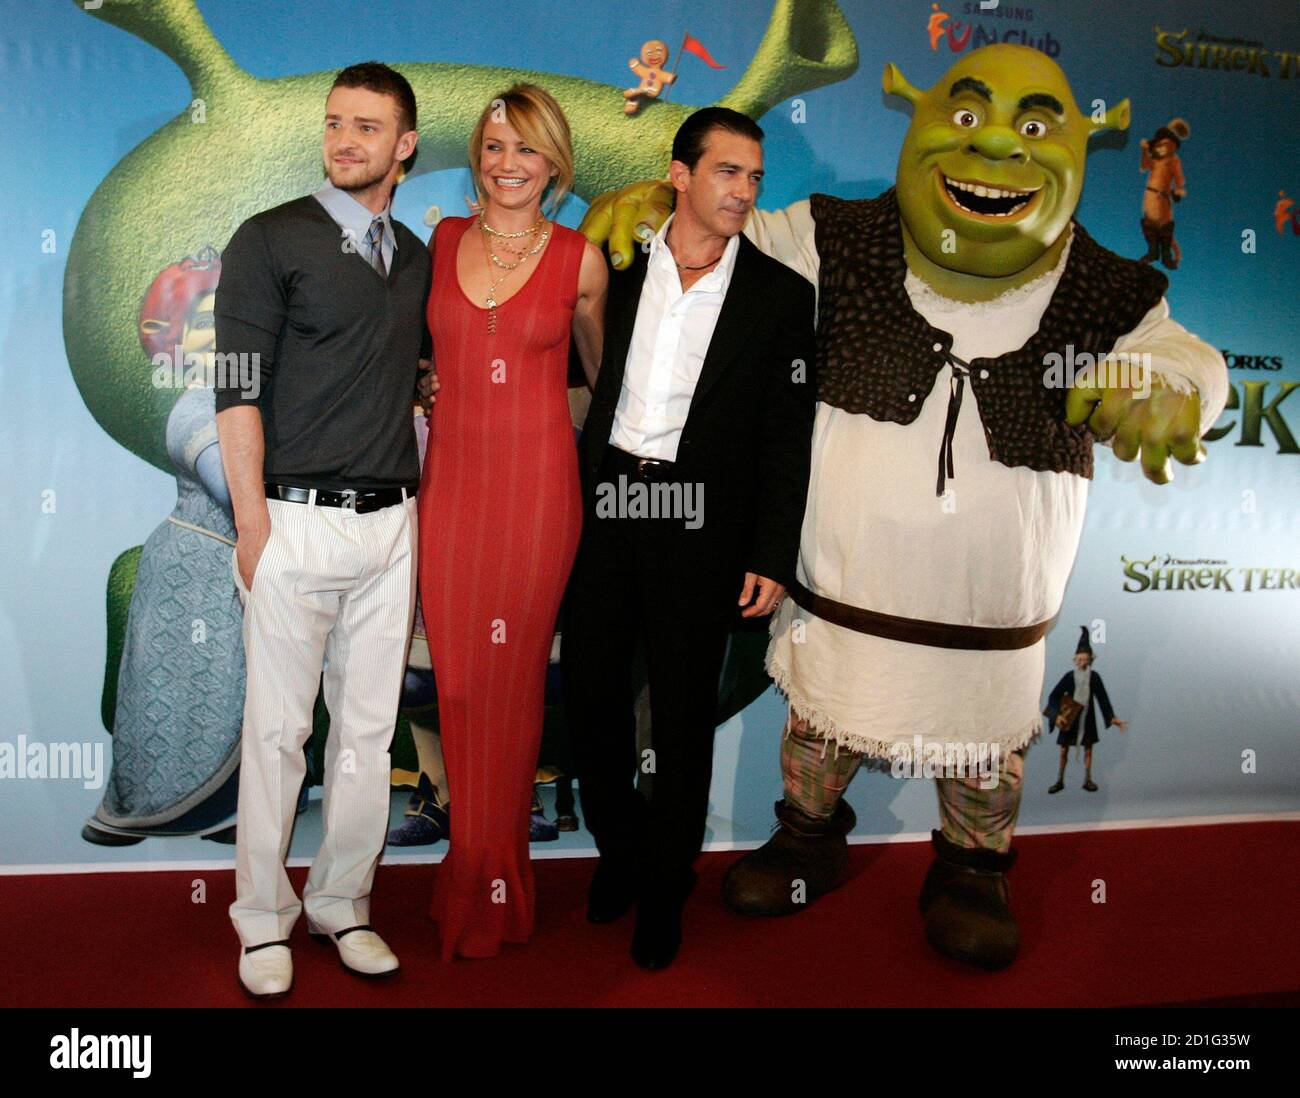 Shrek Character High Resolution Stock Photography And Images Alamy